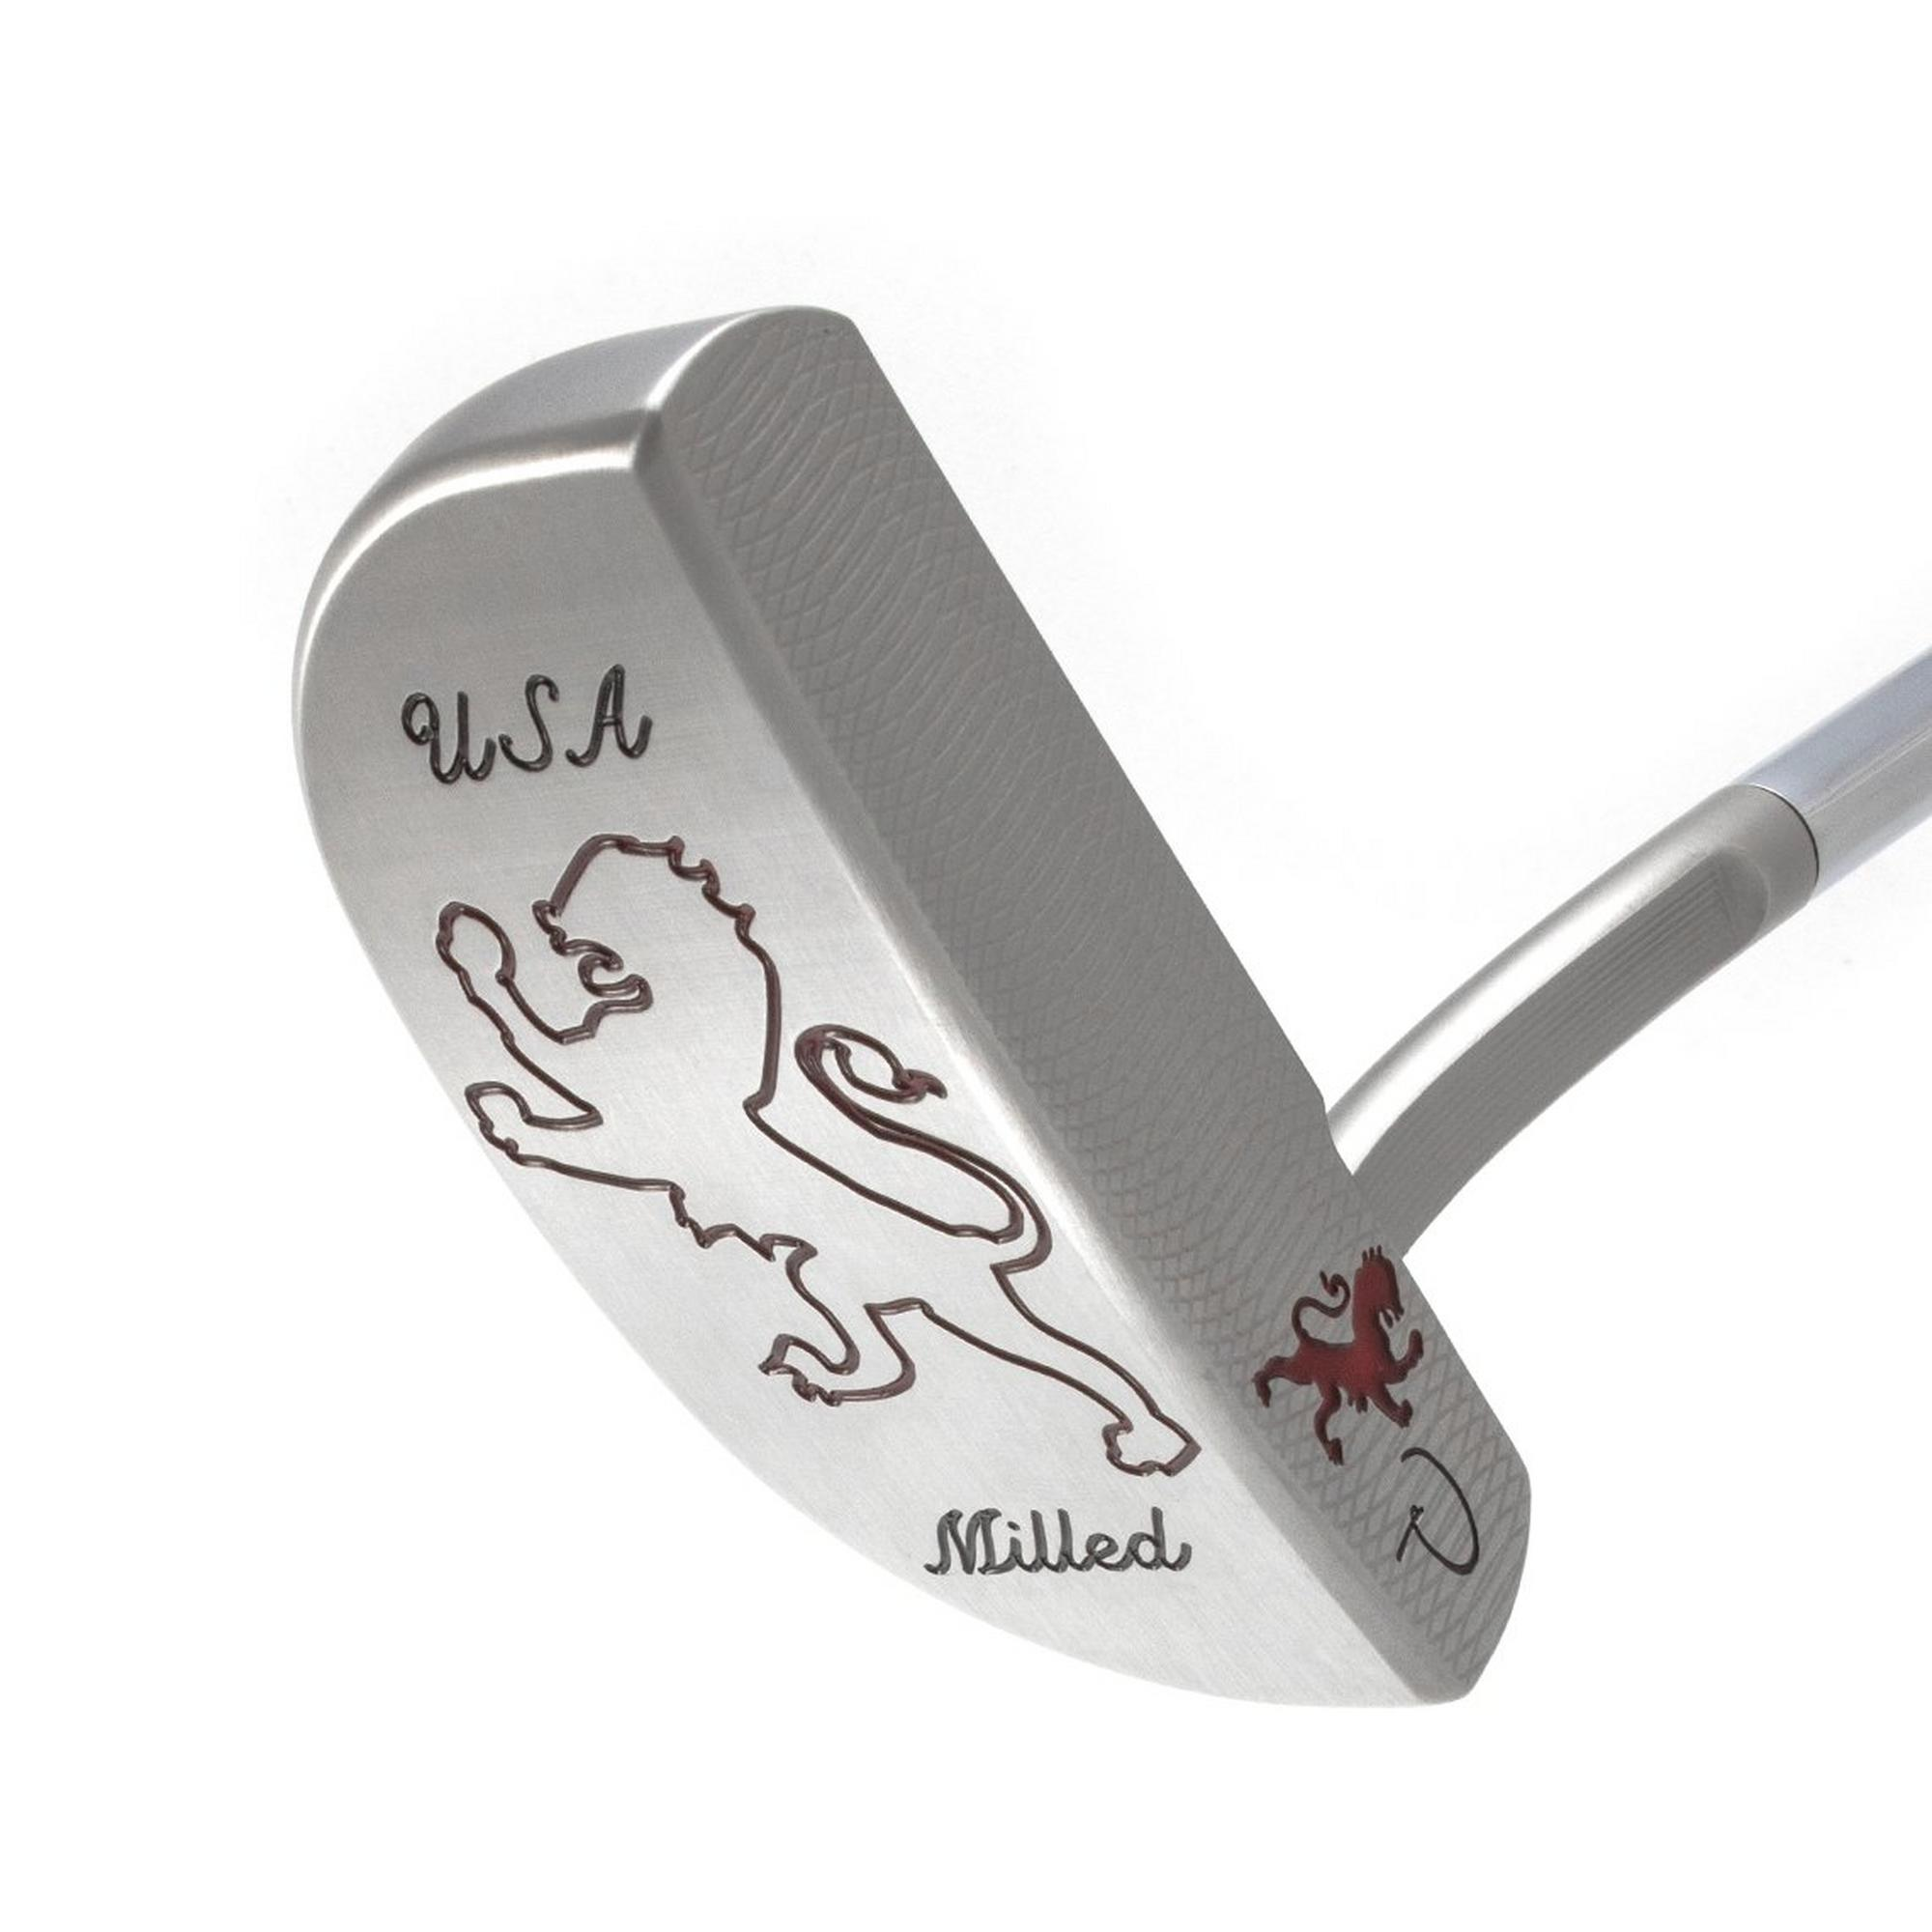 Bosa - 303 Series Putter